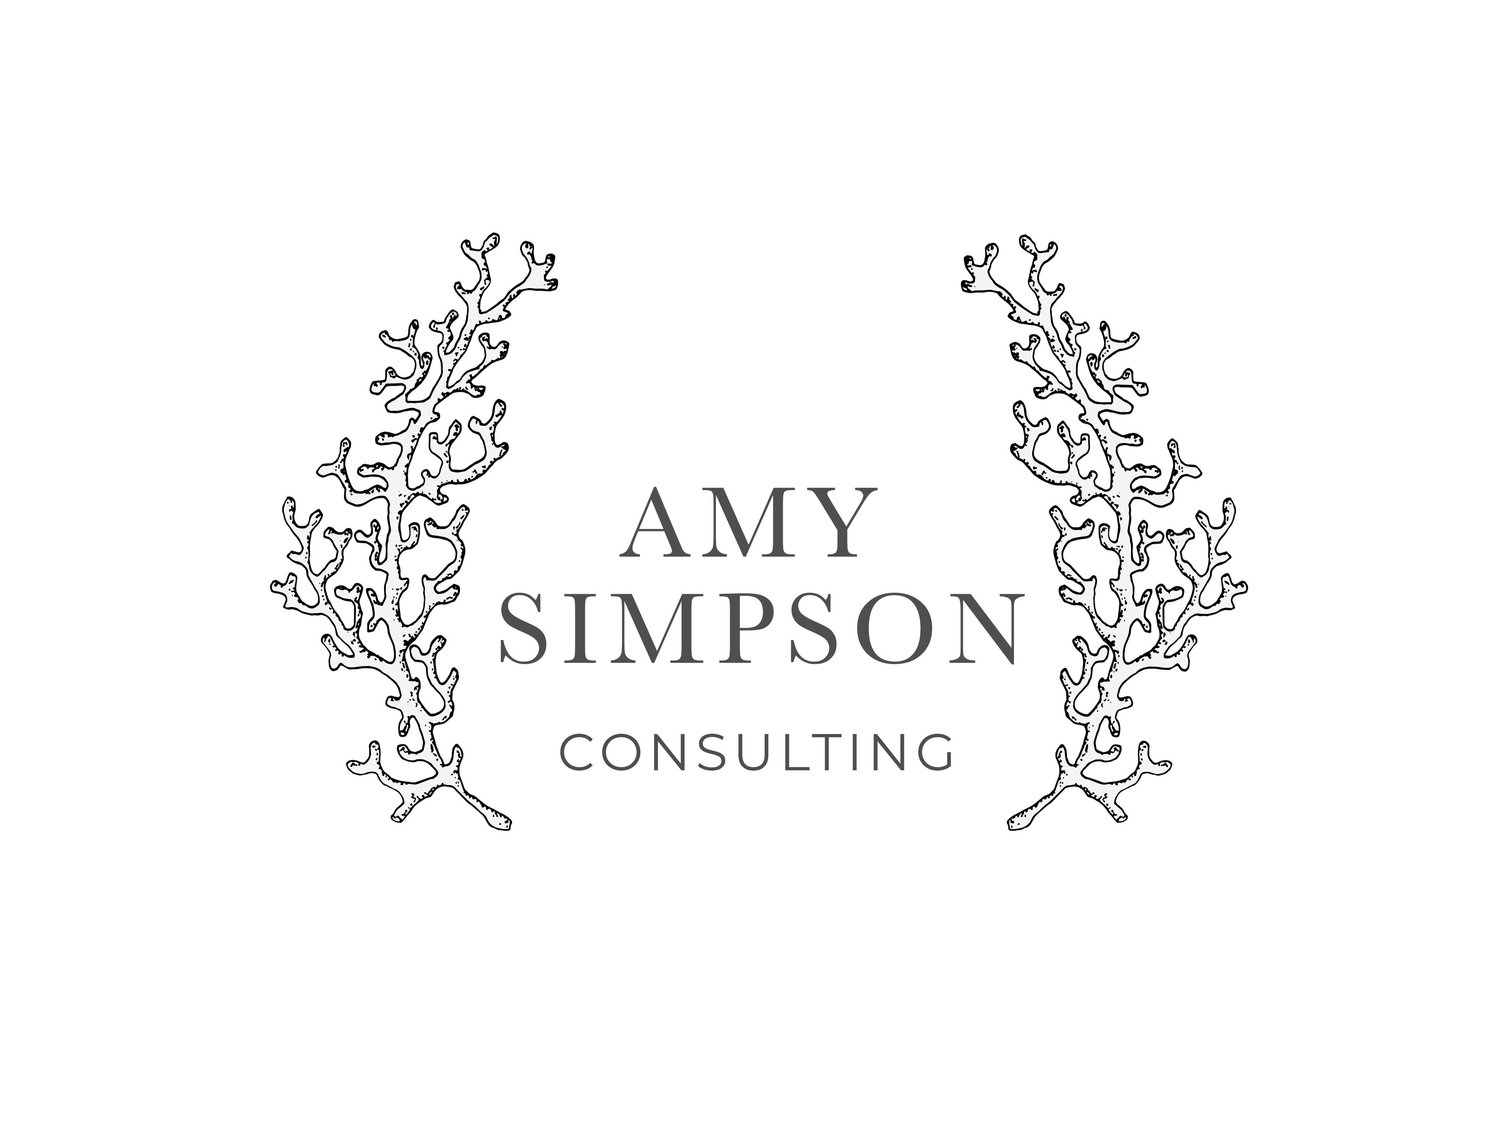 Amy Simpson Consulting